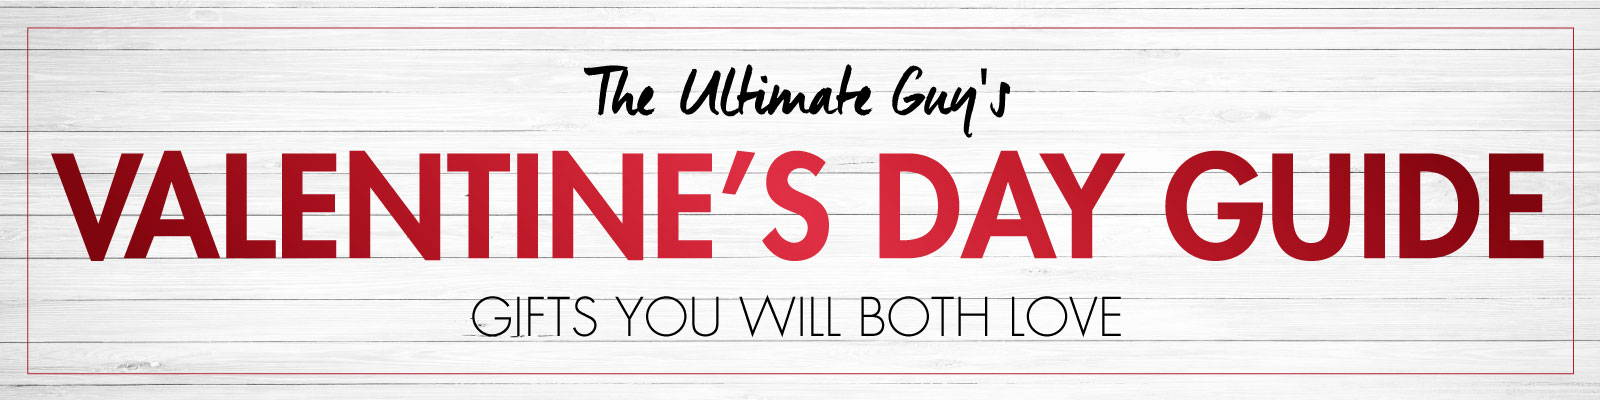 The Ultimate Guy's Valentine's Day Guide. Gifts You Will Both Love.